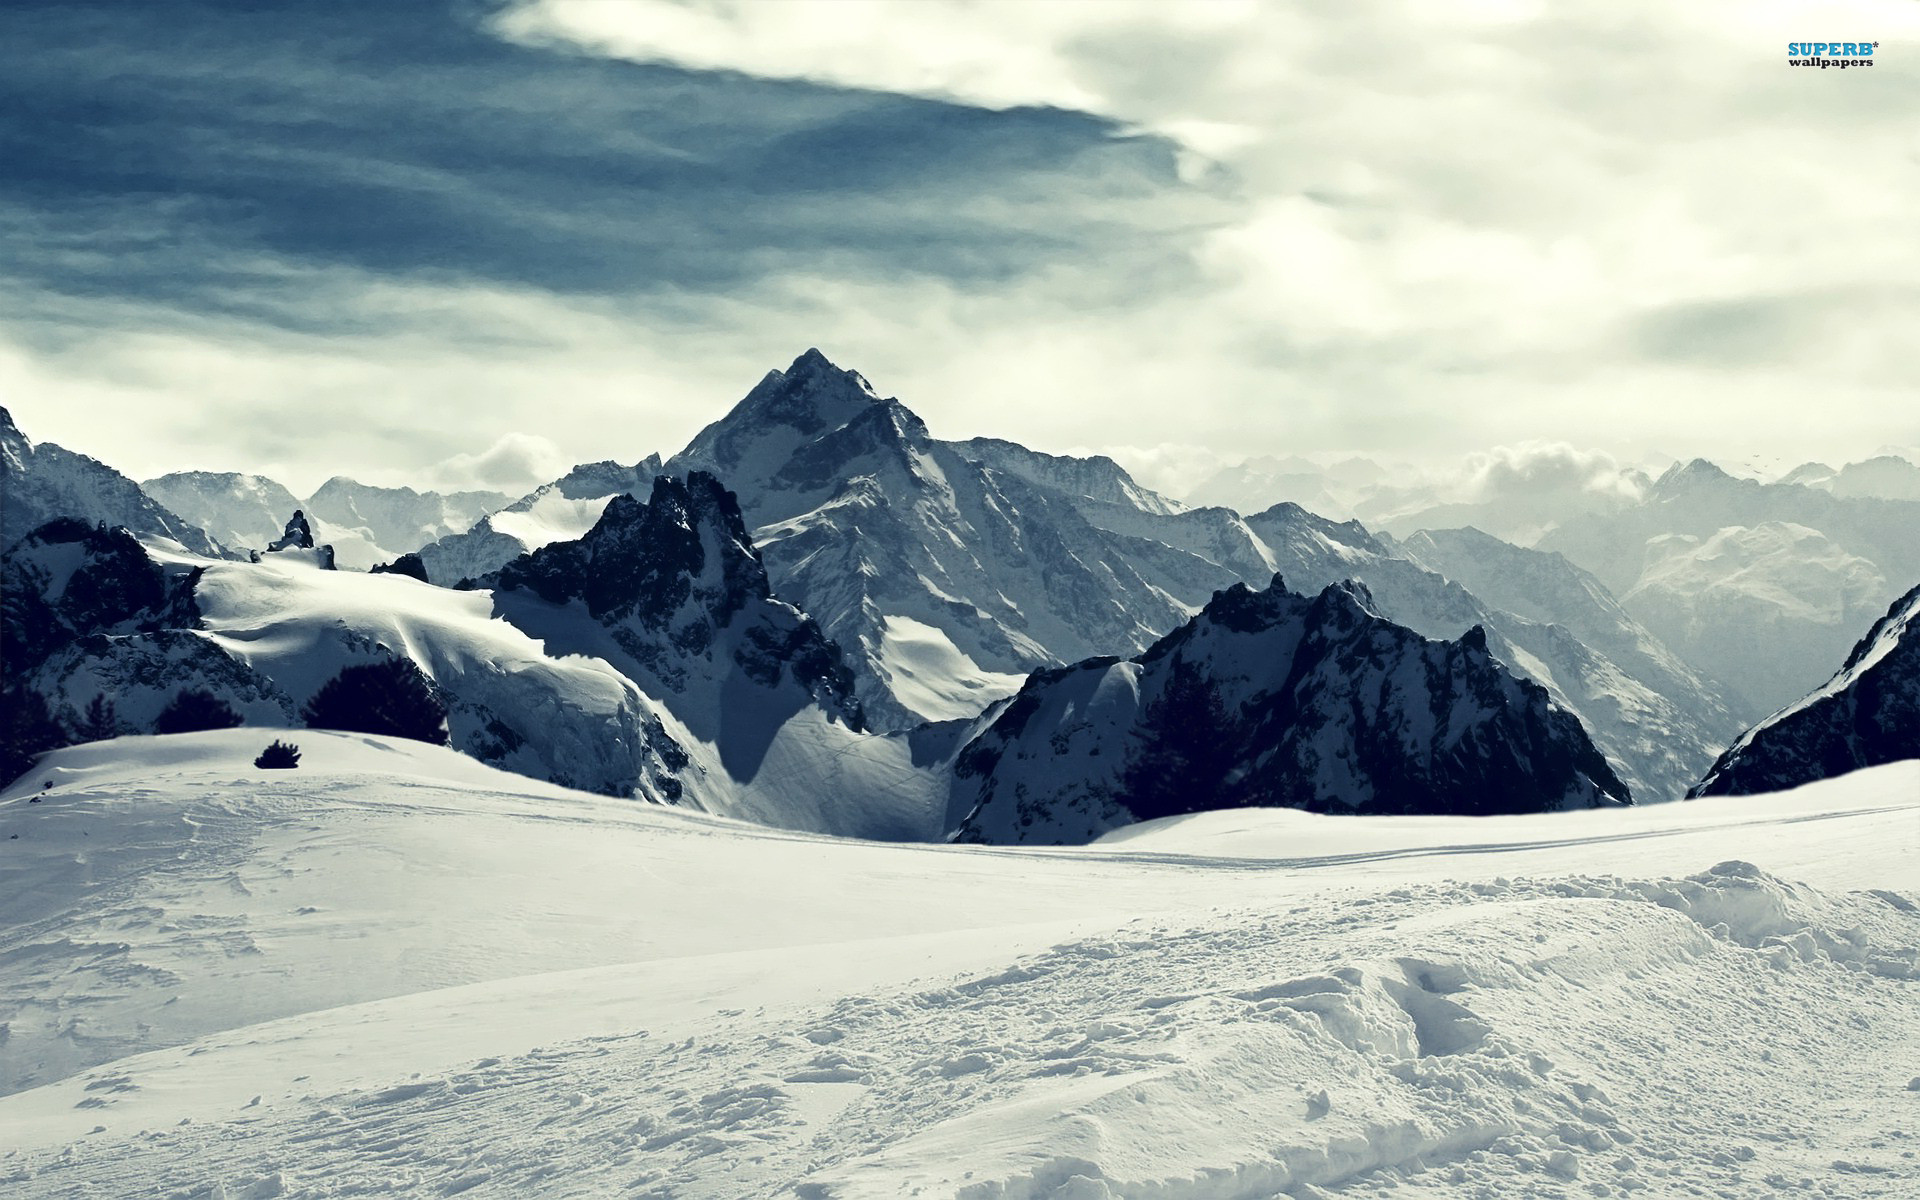 Snow Mountain Wallpaper 76 Pictures